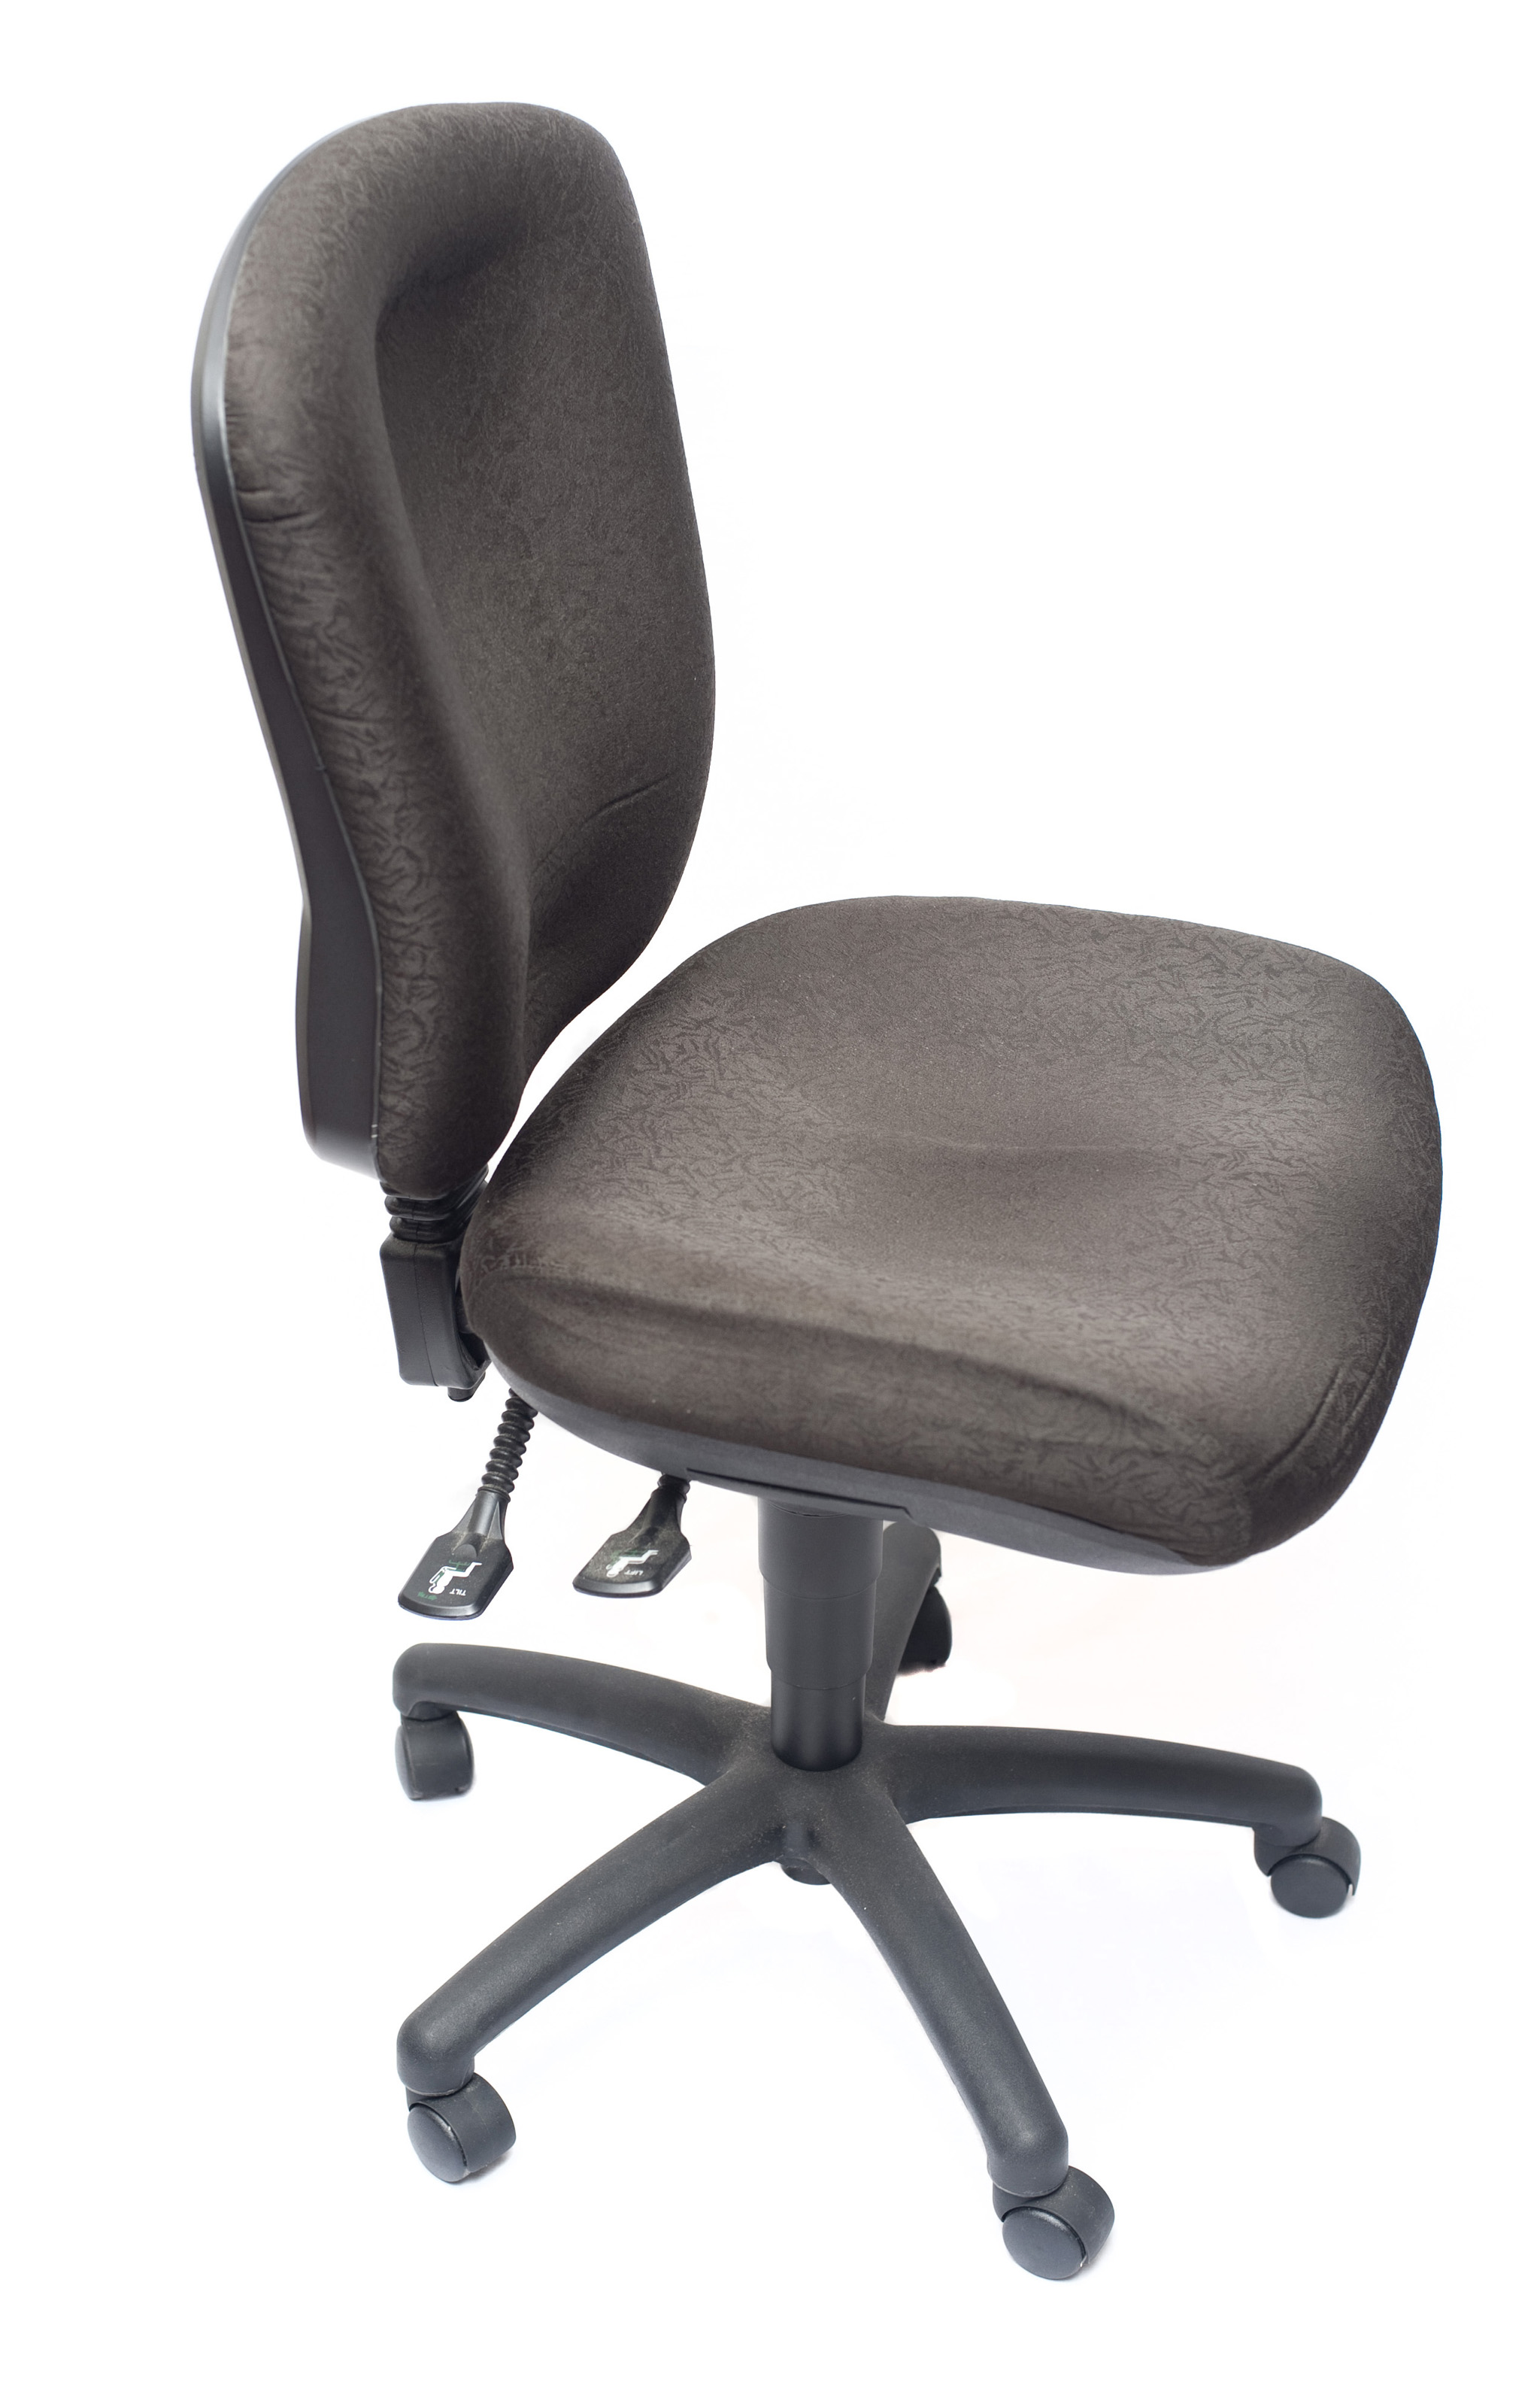 Free Stock Photo 5379 Comfortable Black Office Chair Freeimageslive